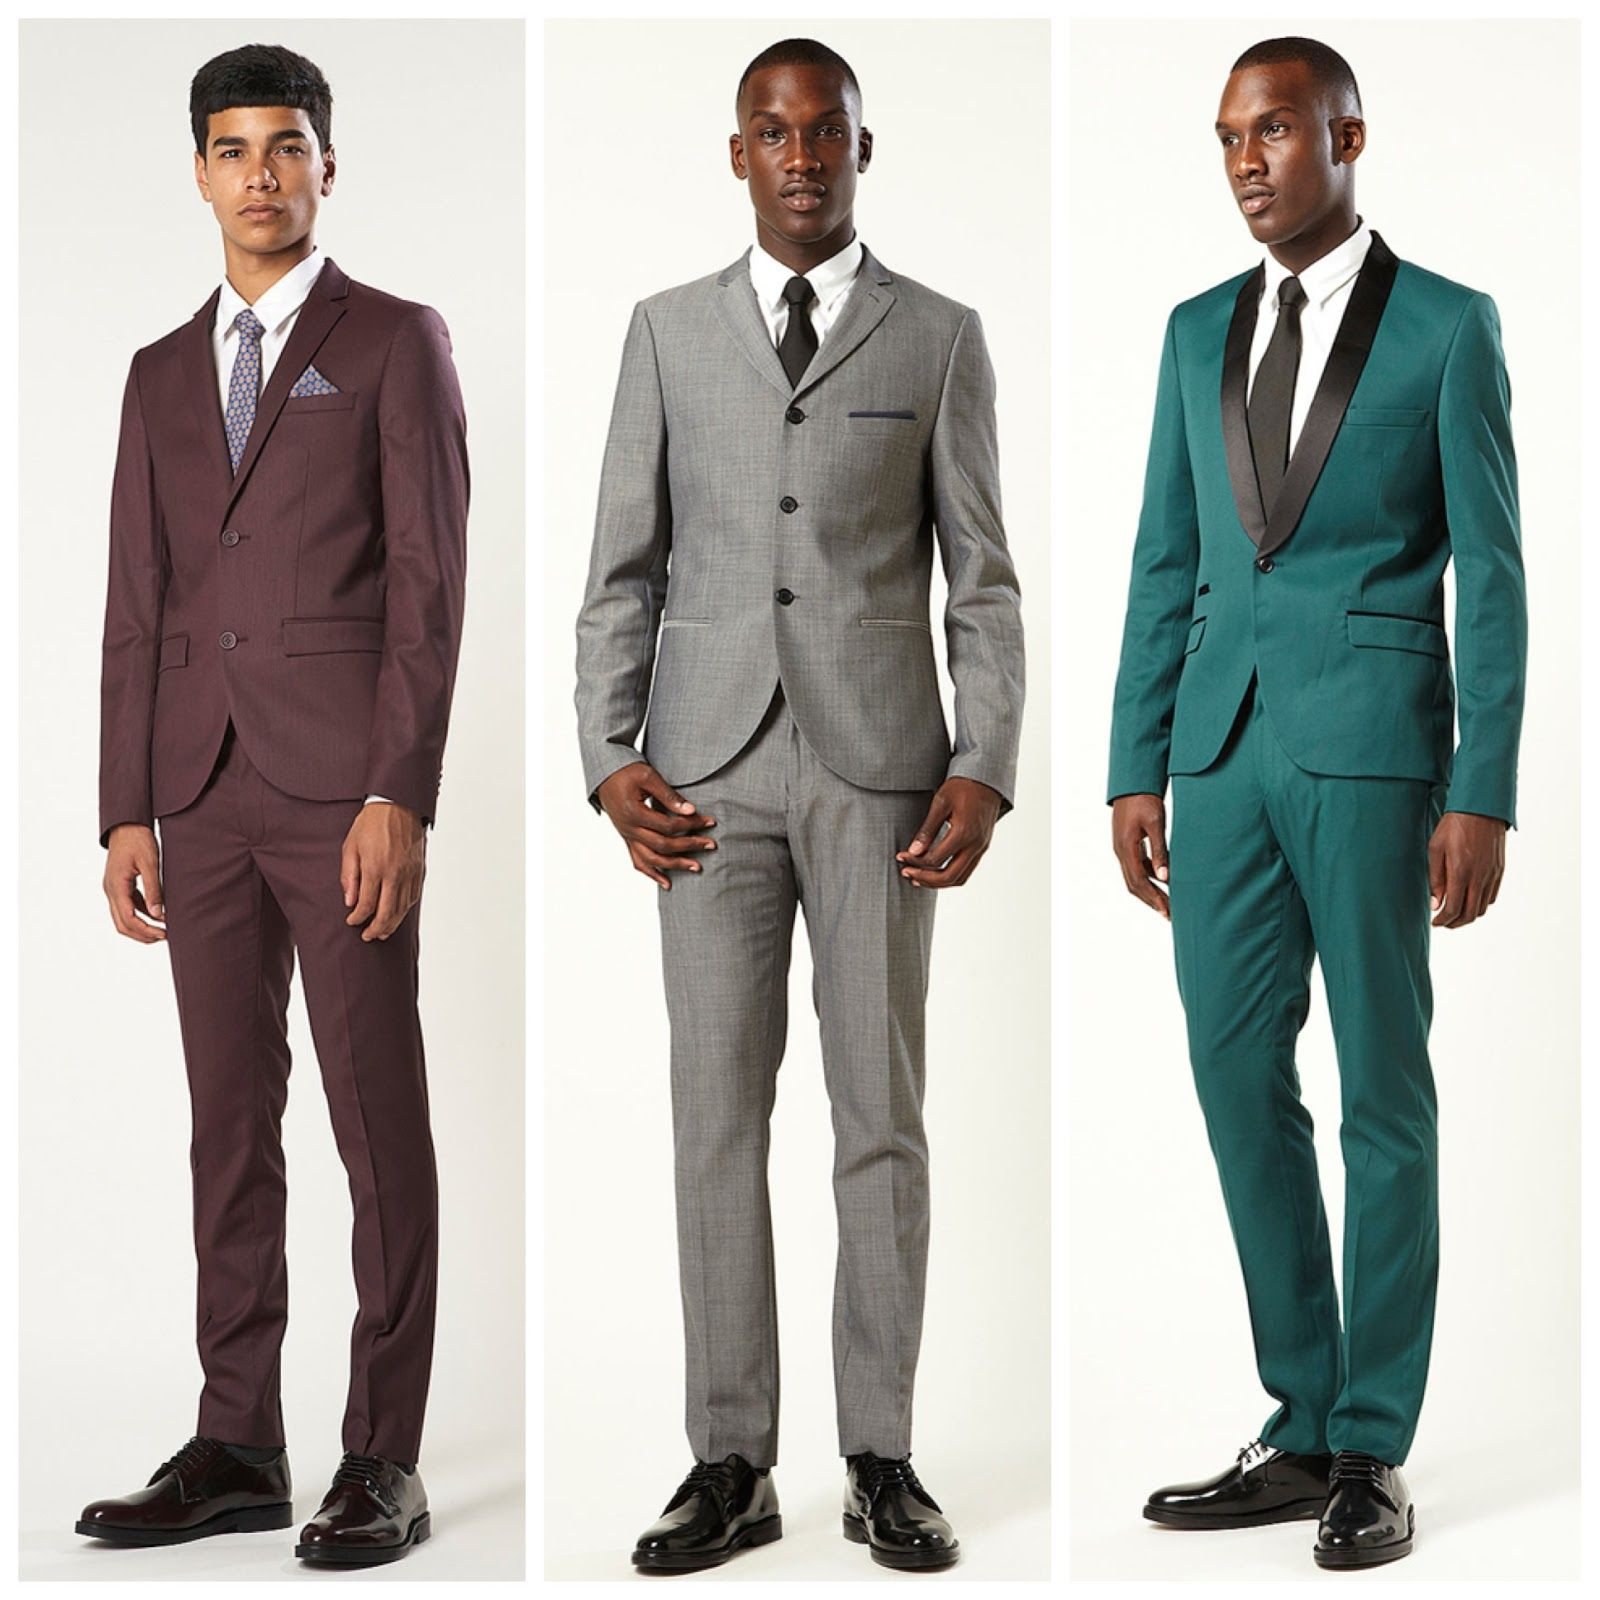 Stylish and affordable groom suits u ideas for the guest of wedding